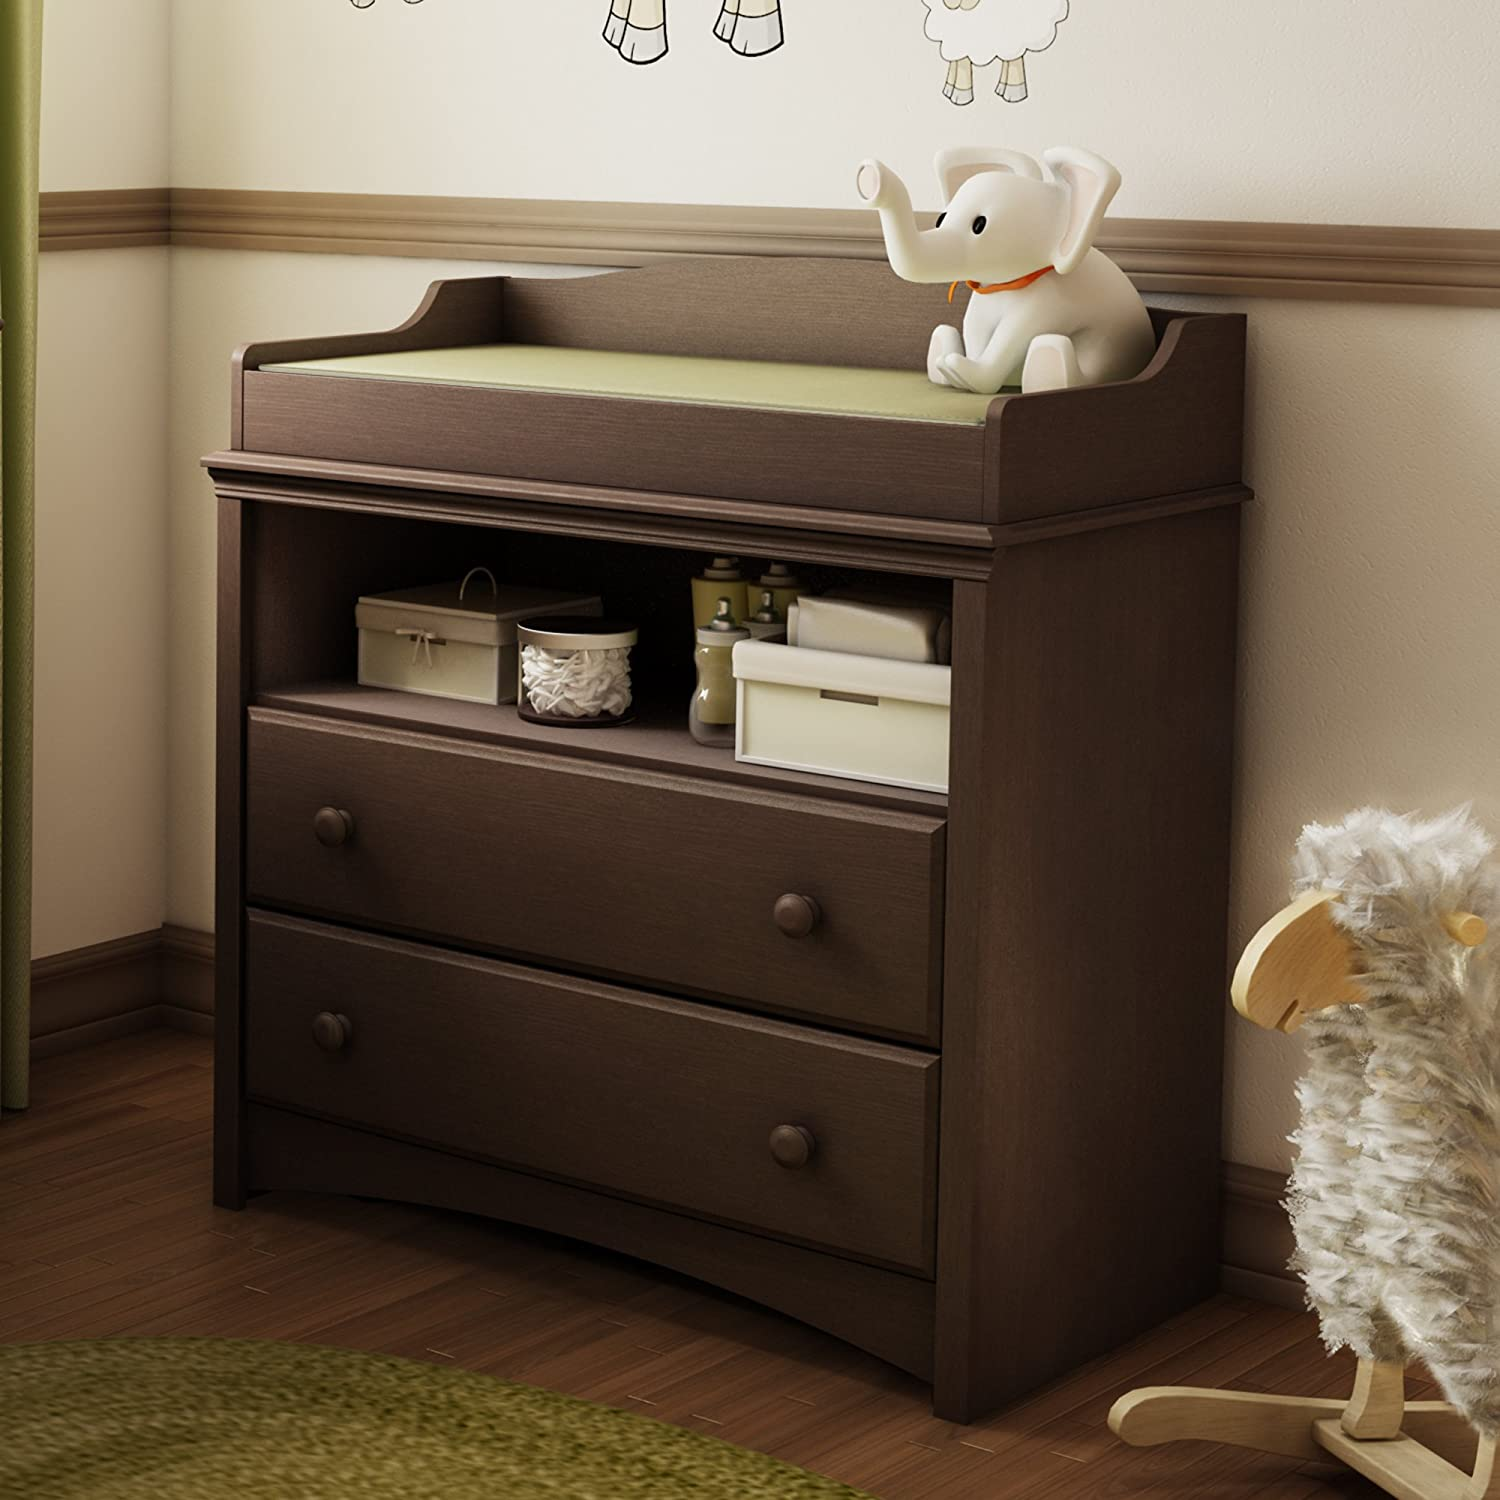 Exceptional Amazon.com : South Shore Angel Changing Table, Espresso : Changing Dresser  : Kitchen U0026 Dining